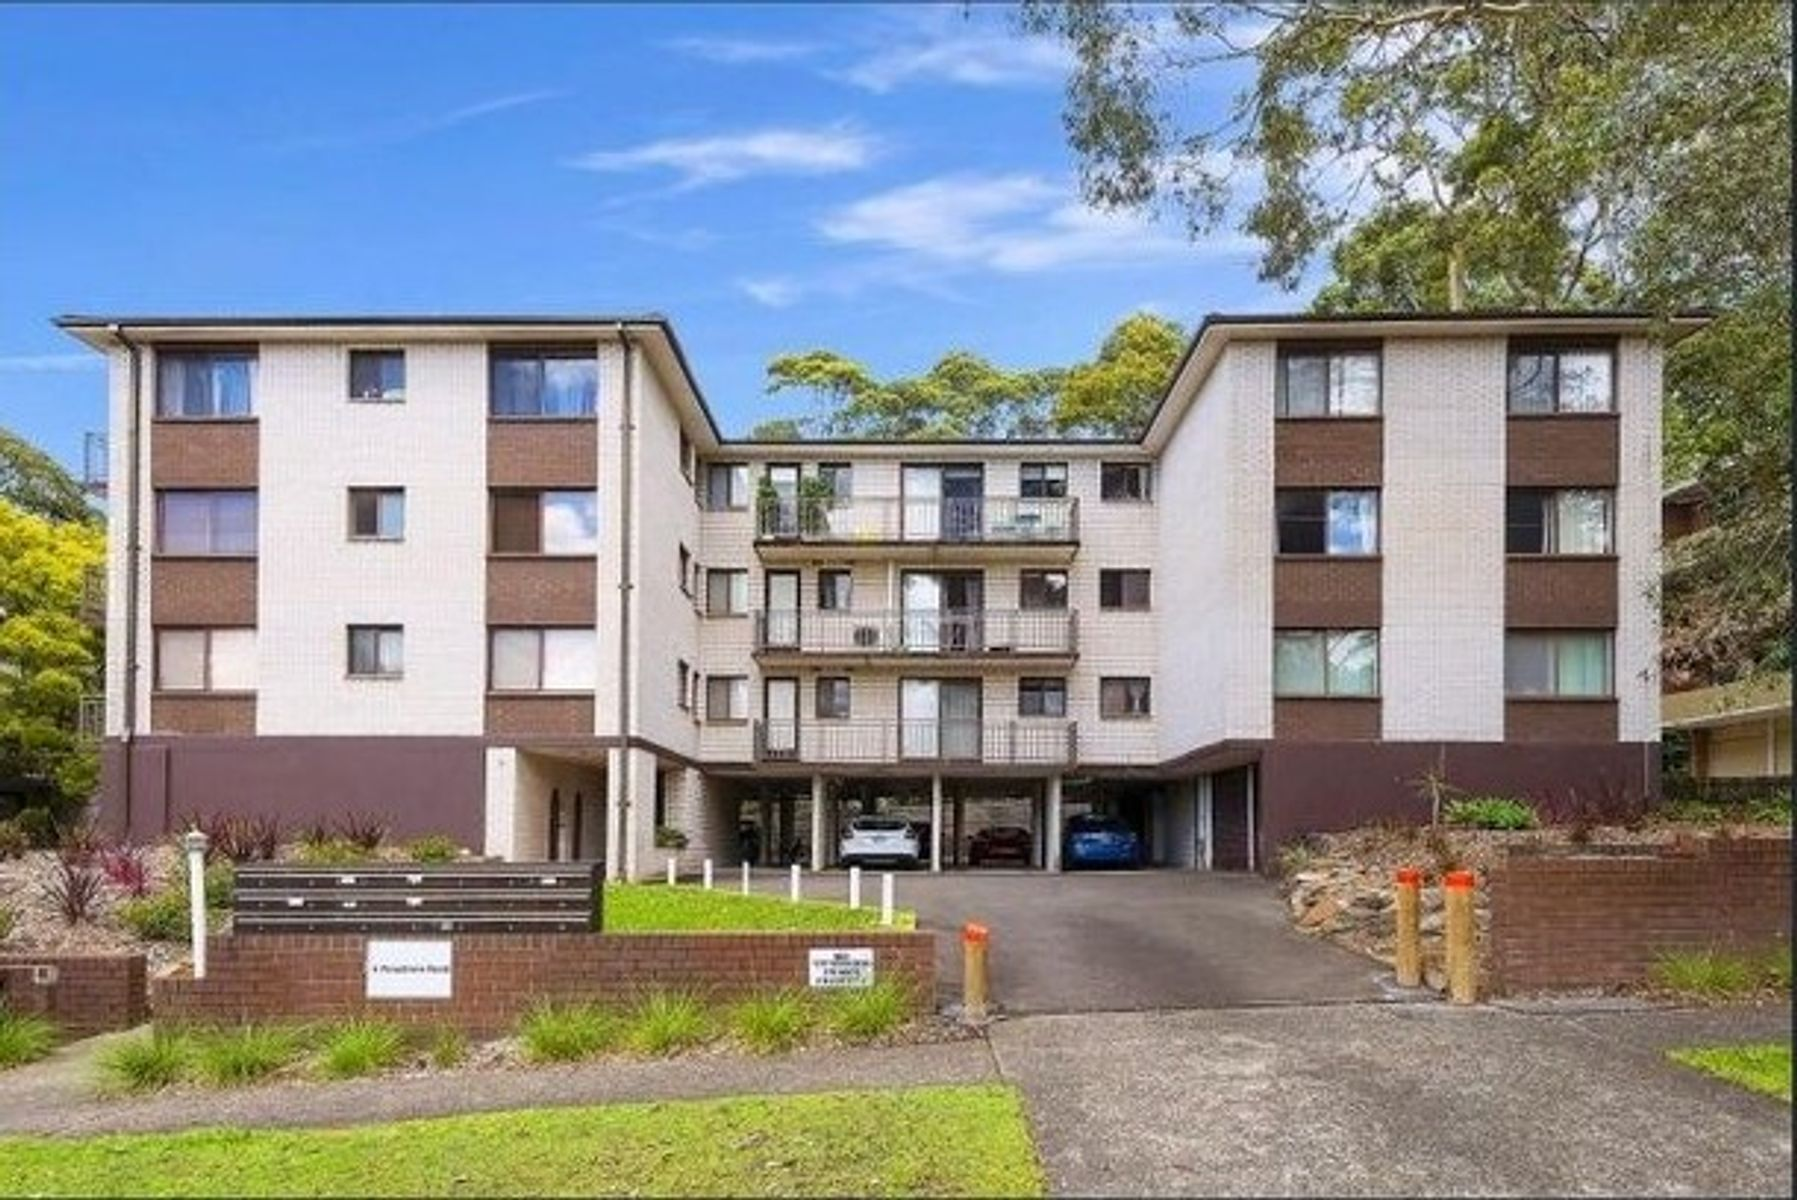 16/5 Peach Tree Road, Macquarie Park, NSW 2113